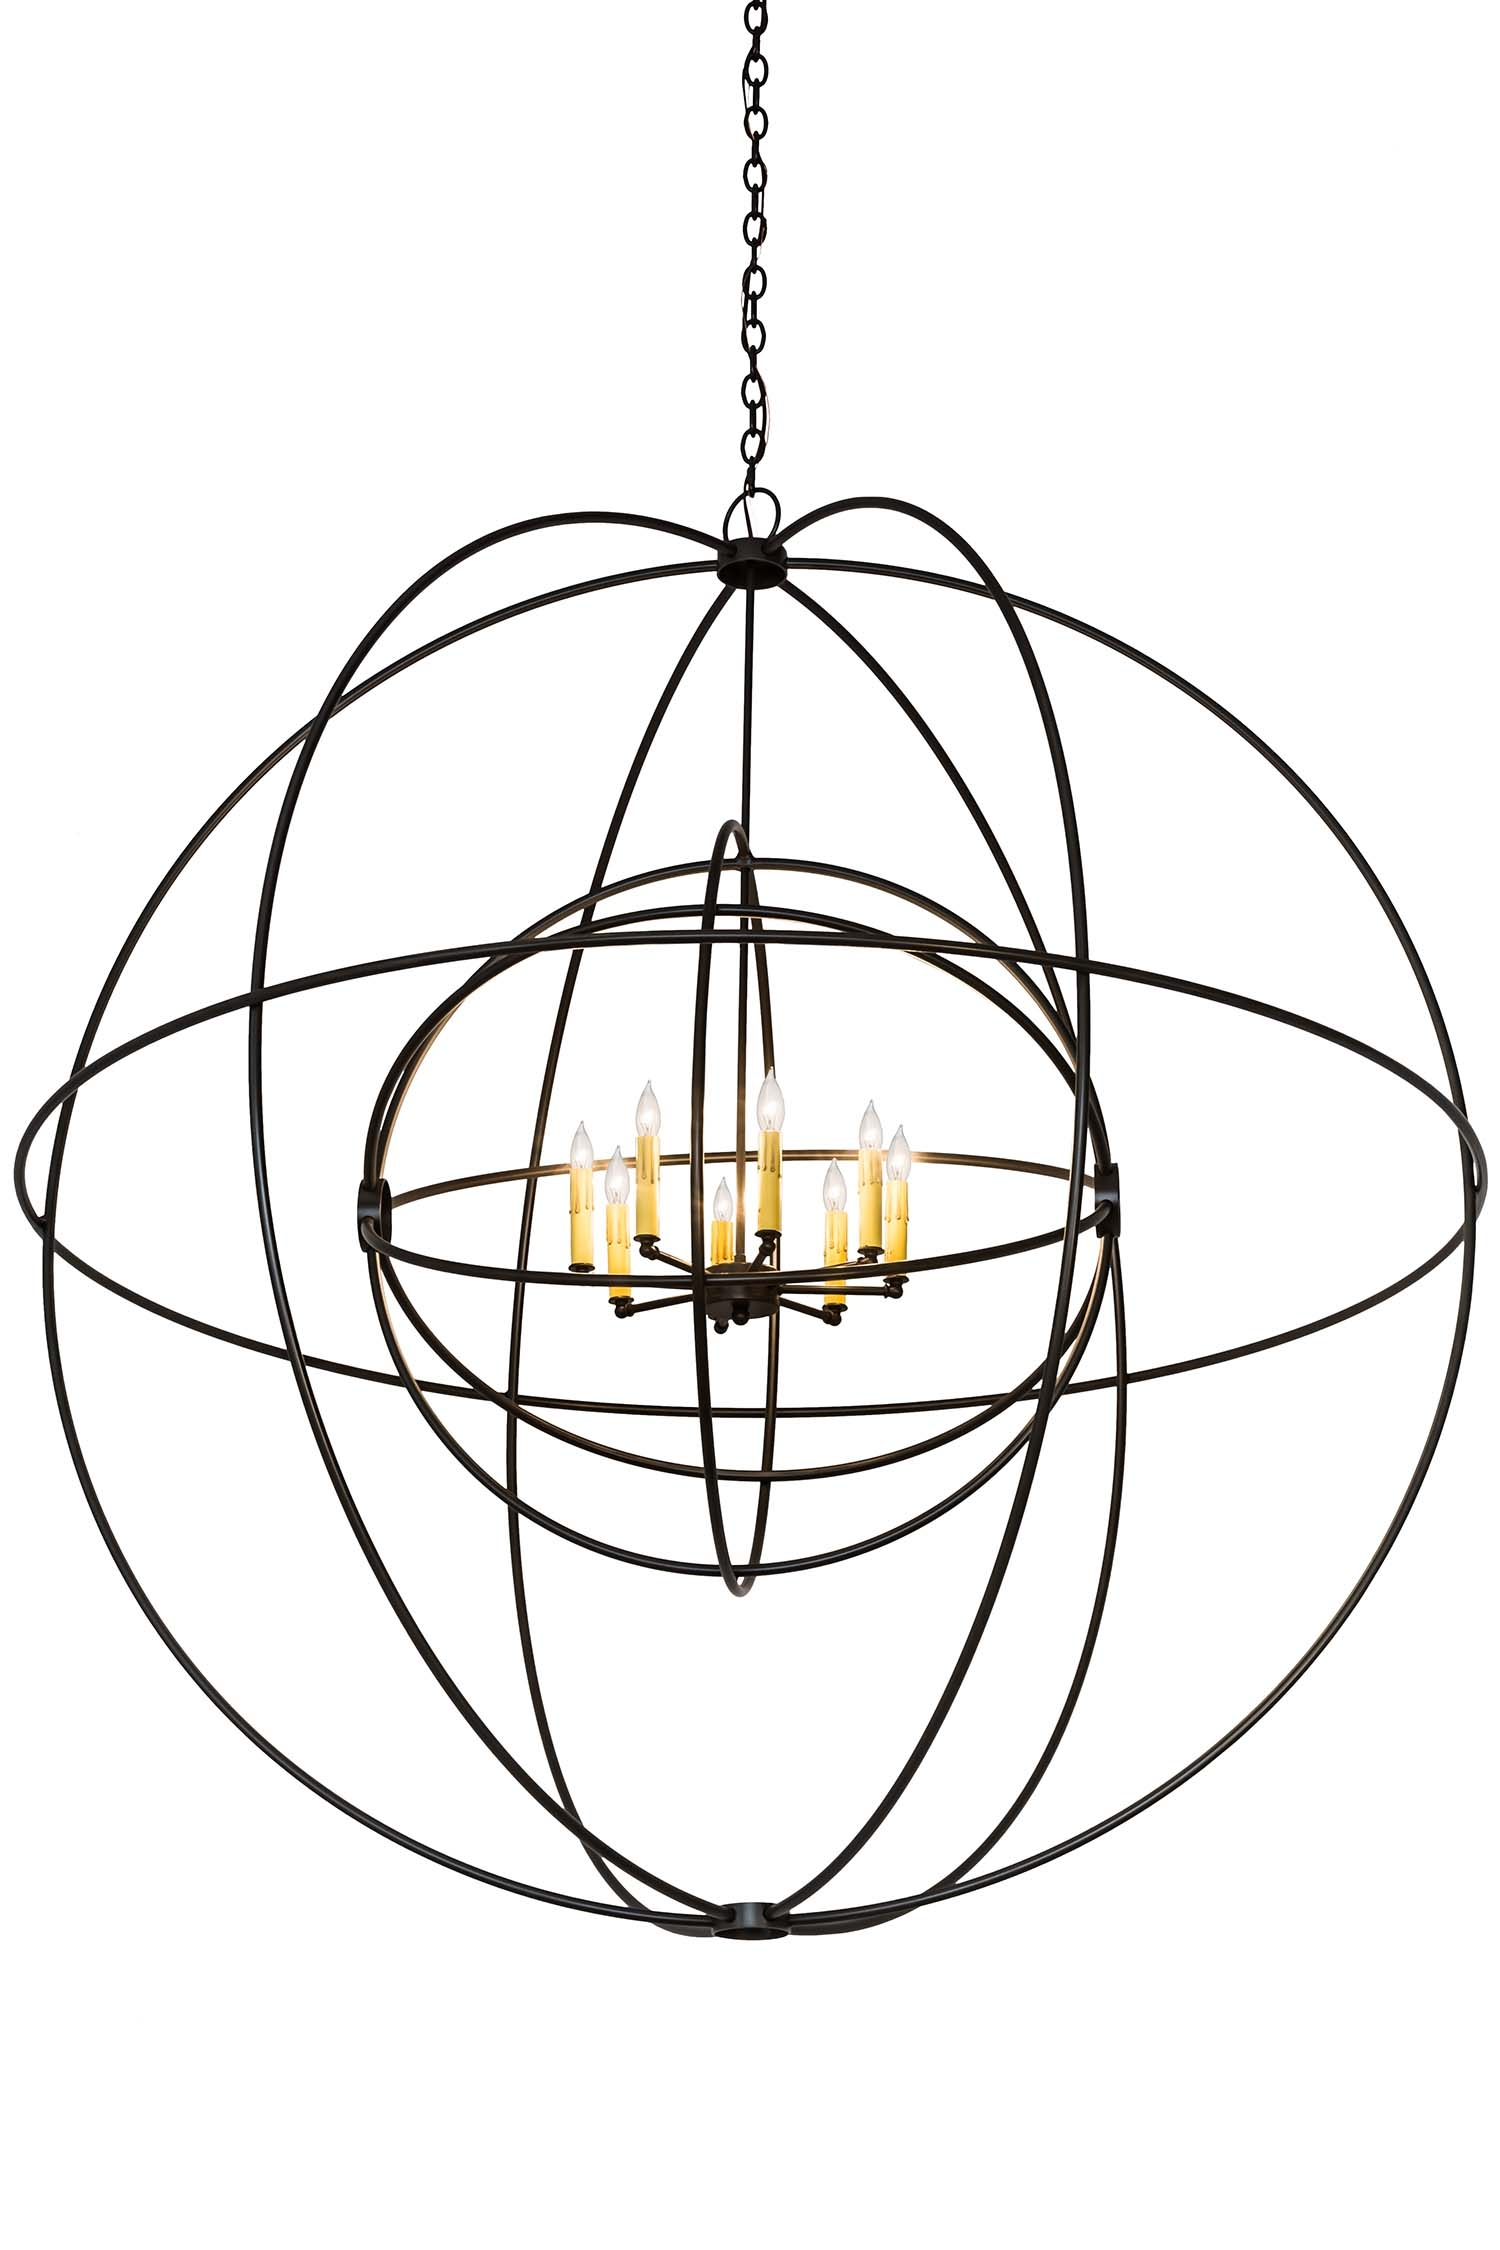 Meyda Custom Lighting Unveils Atom Enerjisi Chandelier Lightboard Inside Atom Chandeliers (Image 11 of 25)